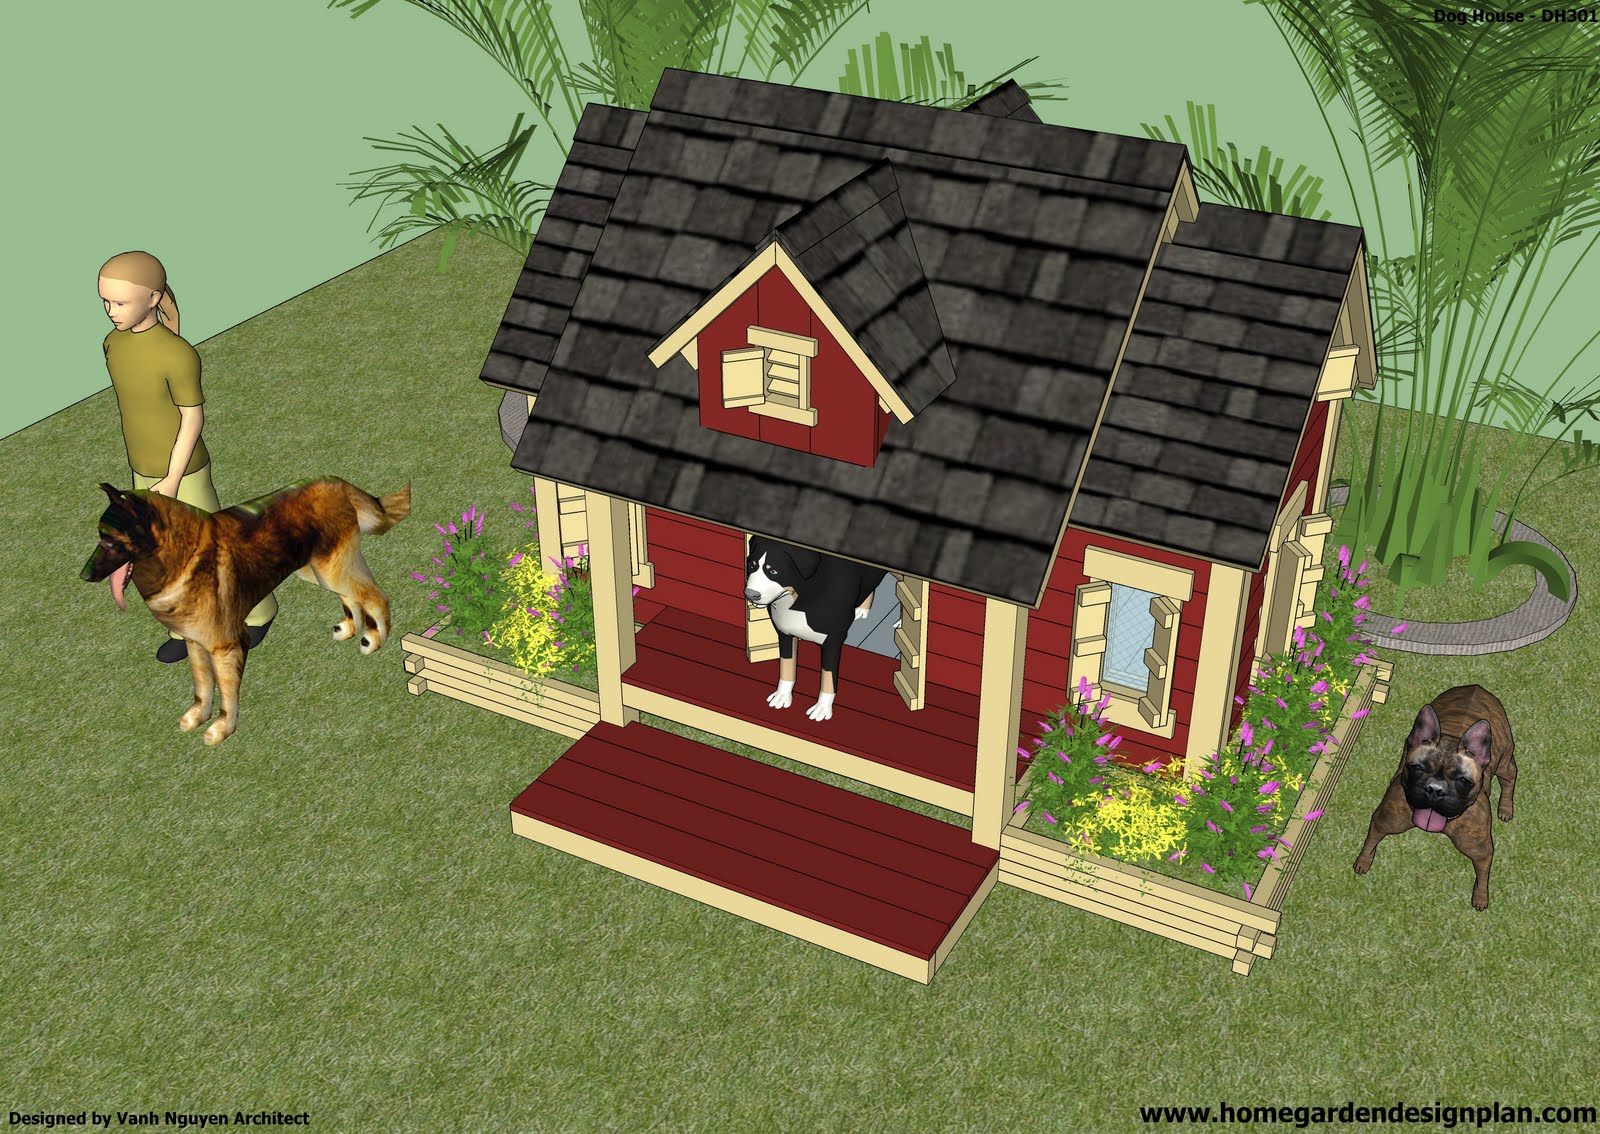 home garden plans dh301 dog house plans how to build an insulated dog house free dog. Black Bedroom Furniture Sets. Home Design Ideas